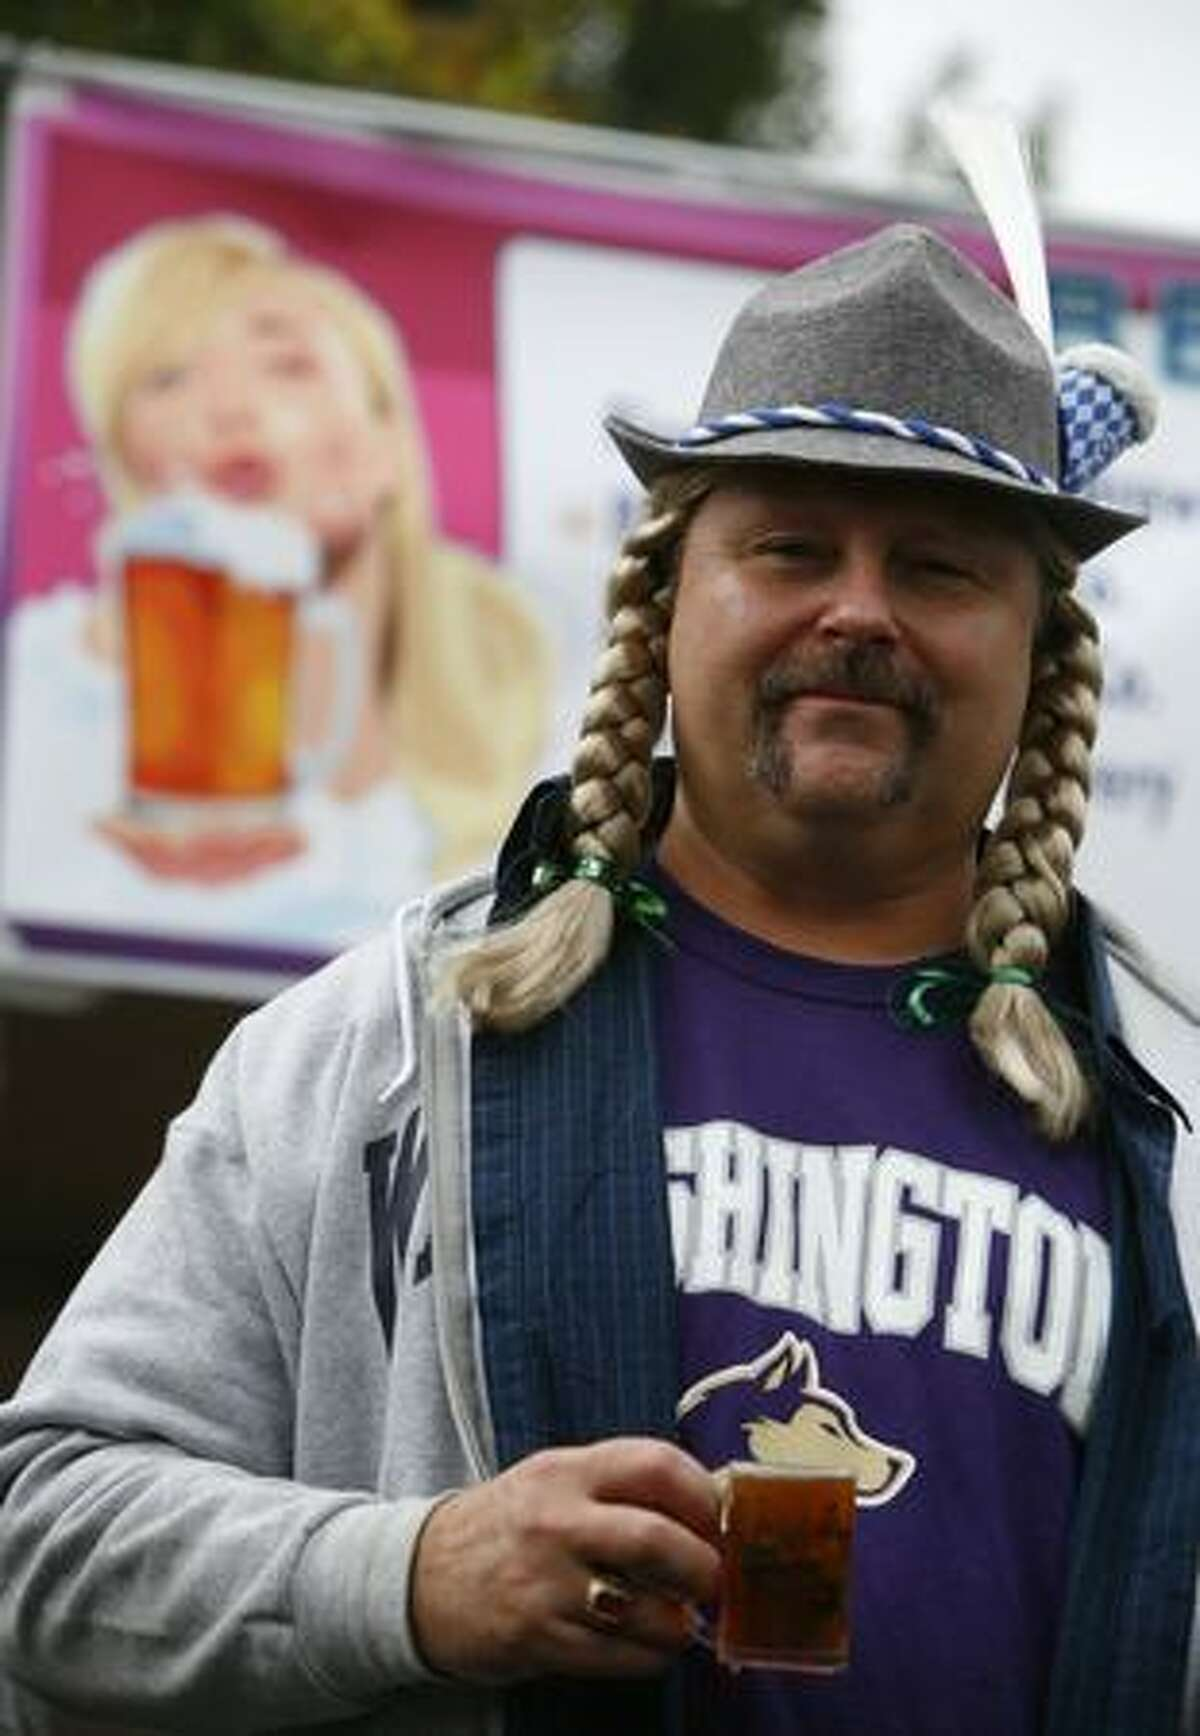 A participant shows off his hat during Fremont's Oktoberfest celebration on September 19, 2009 in Fremont.